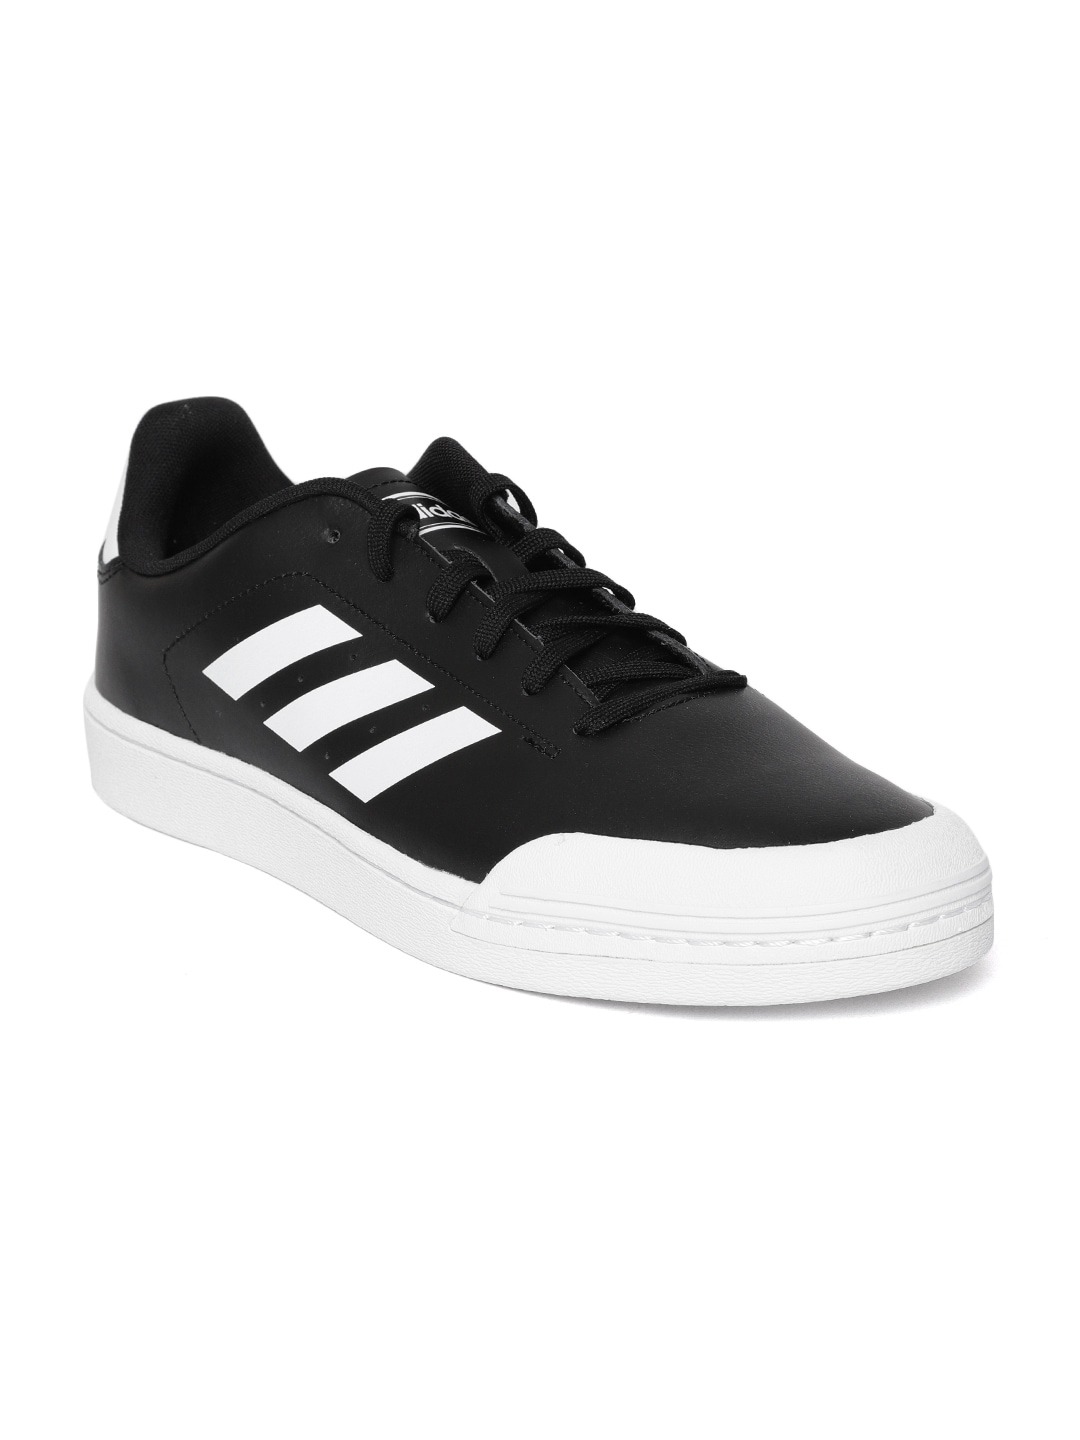 new style cb3db 74ea5 Adidas Tennis Shoes  Buy Adidas Tennis Shoes Online in India at Best Price